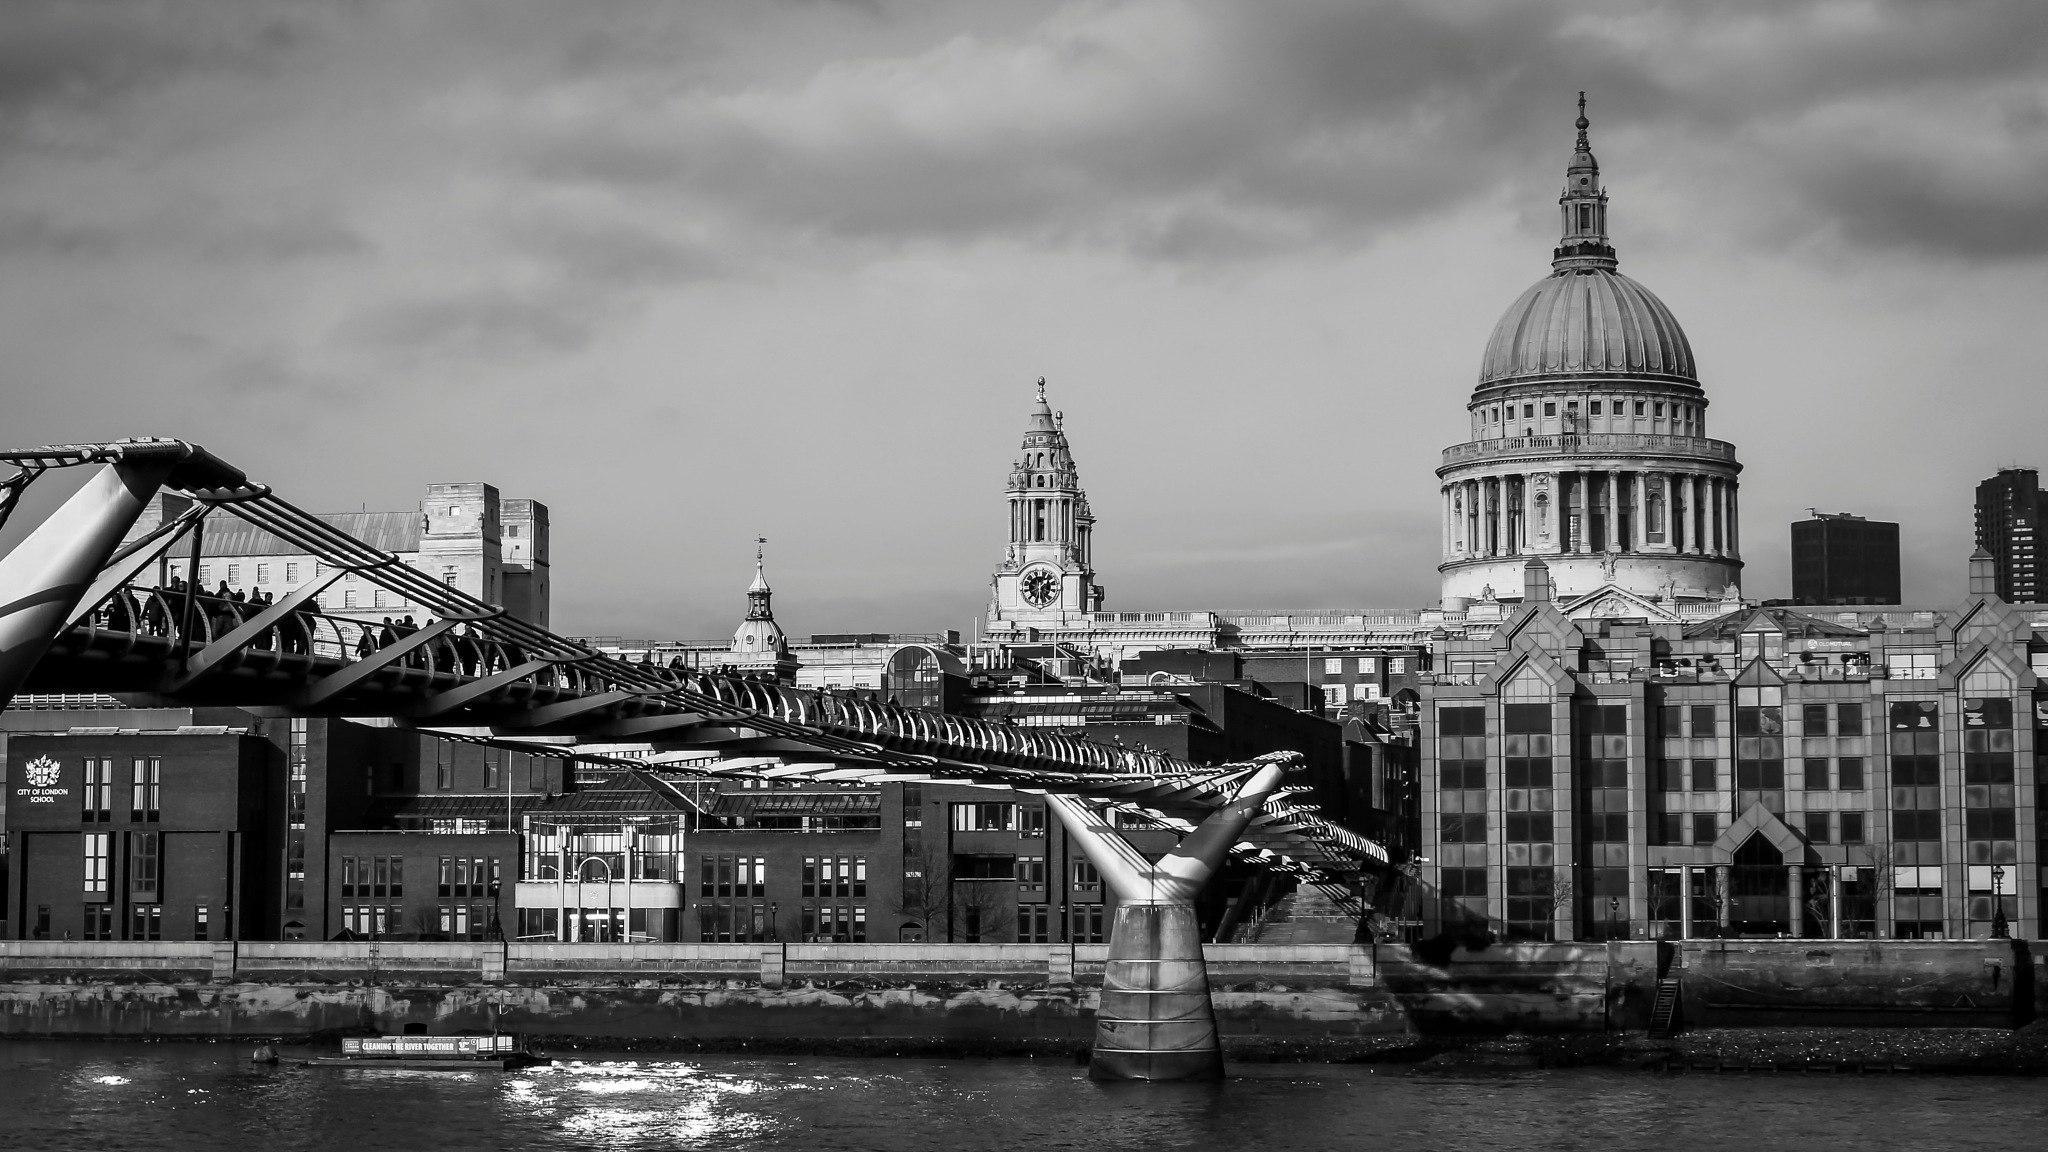 From Tate to St Paul by Rafael Puerto